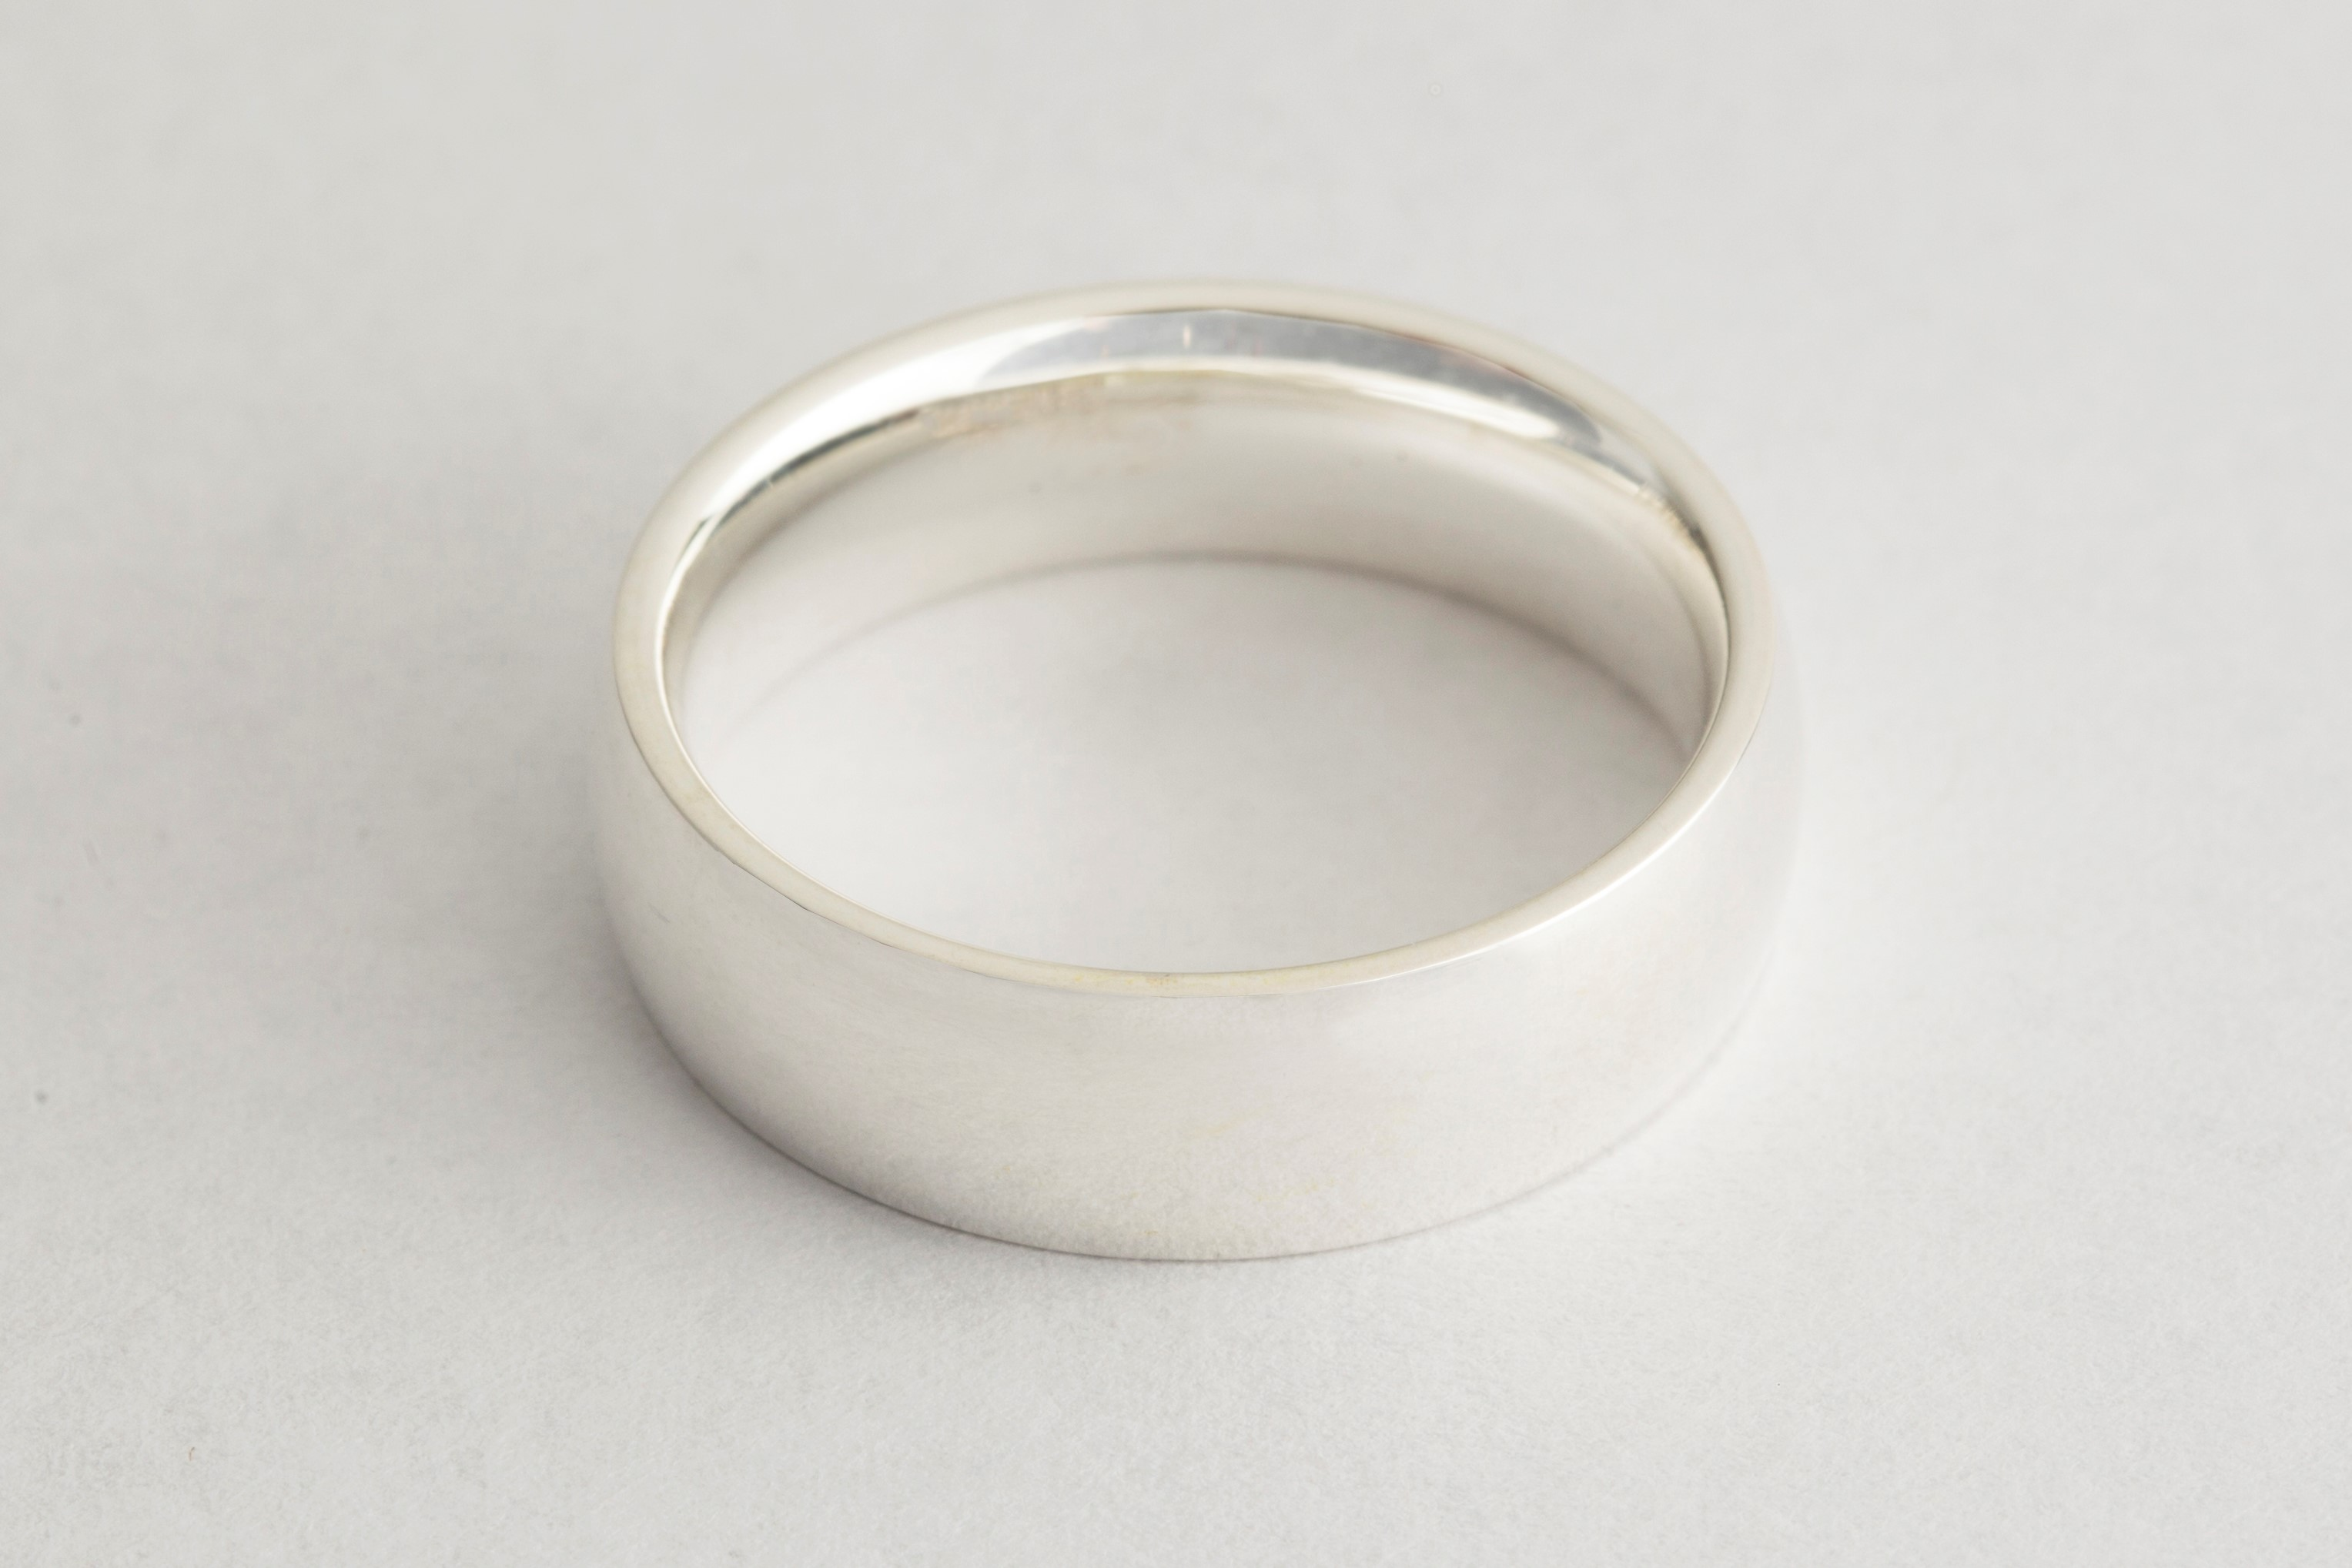 Wedding ring electroplated with silver plating solution